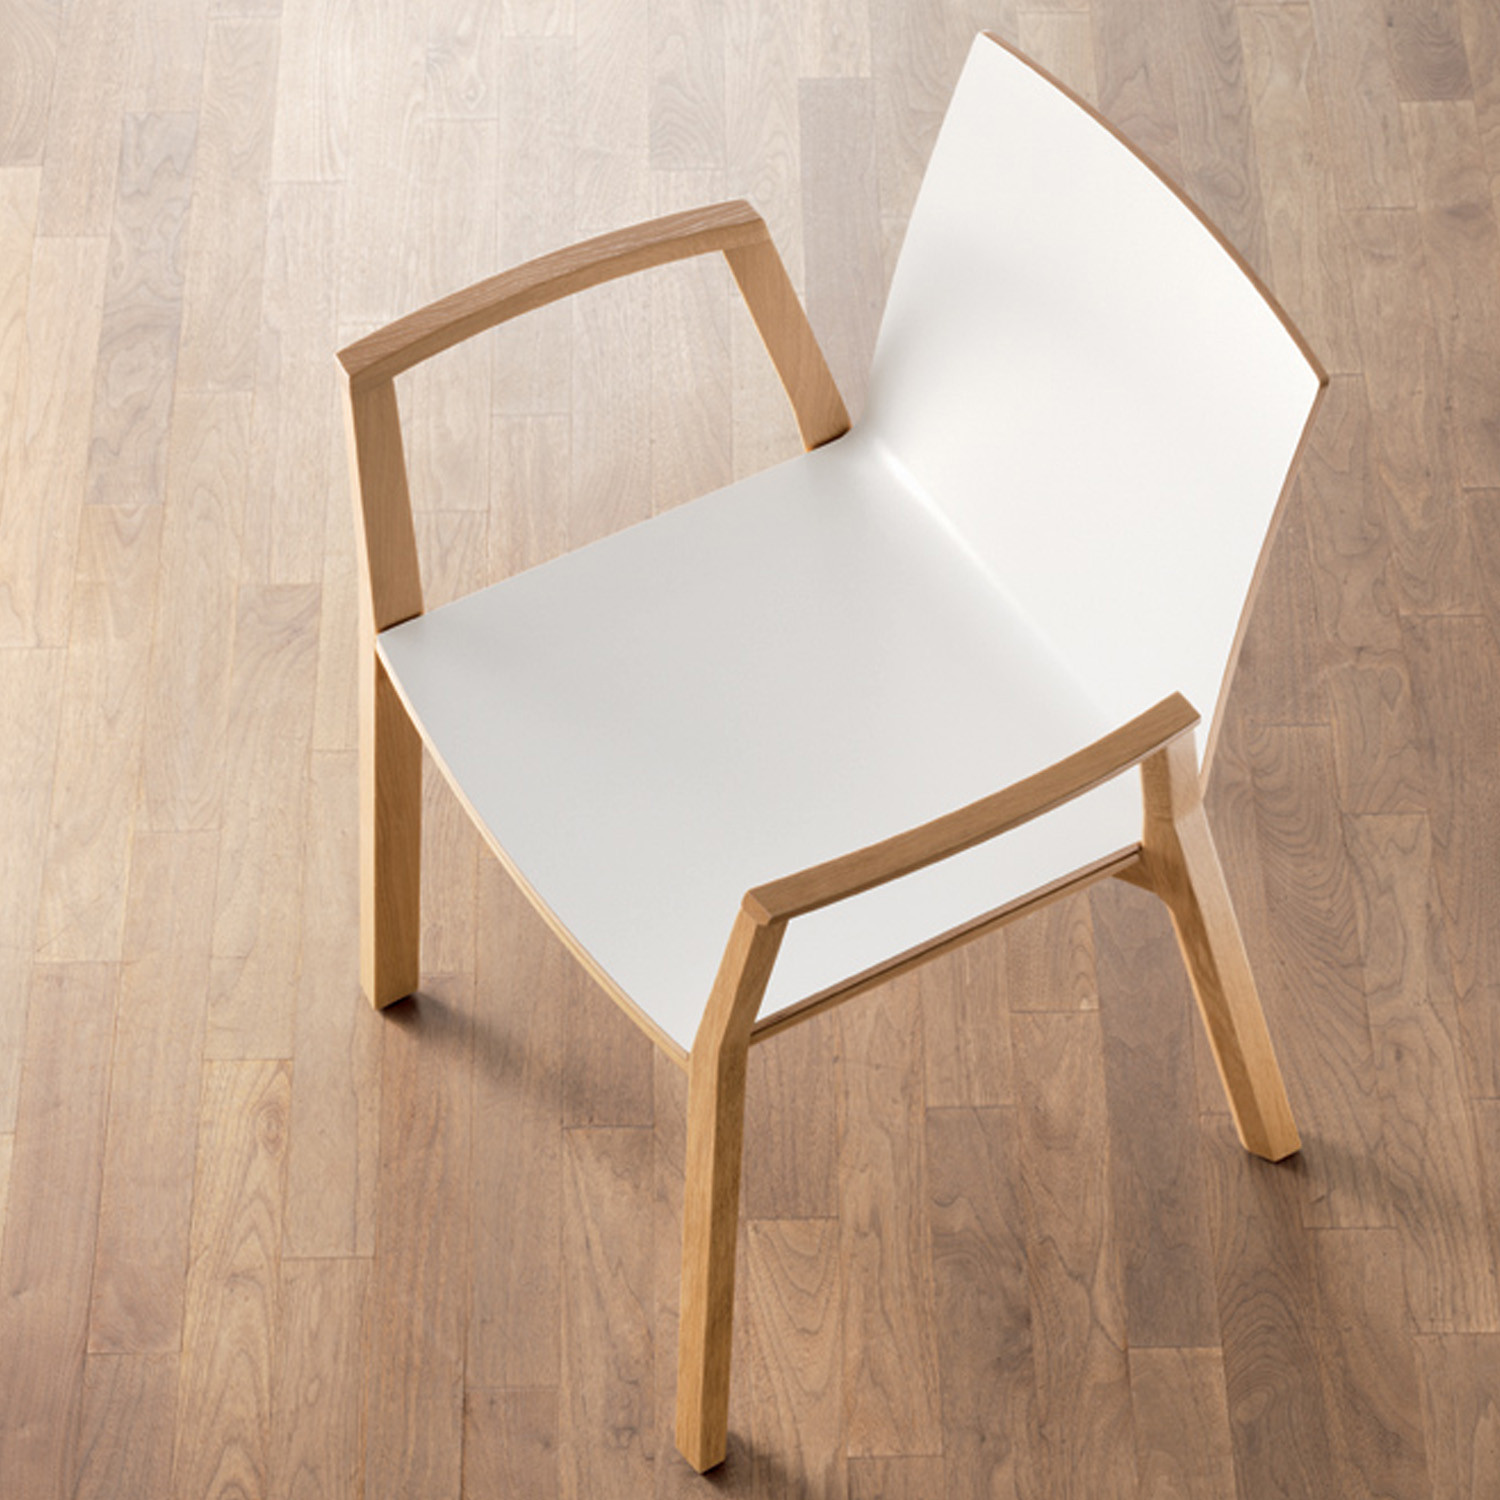 Arta Wooden Chair from Arge2